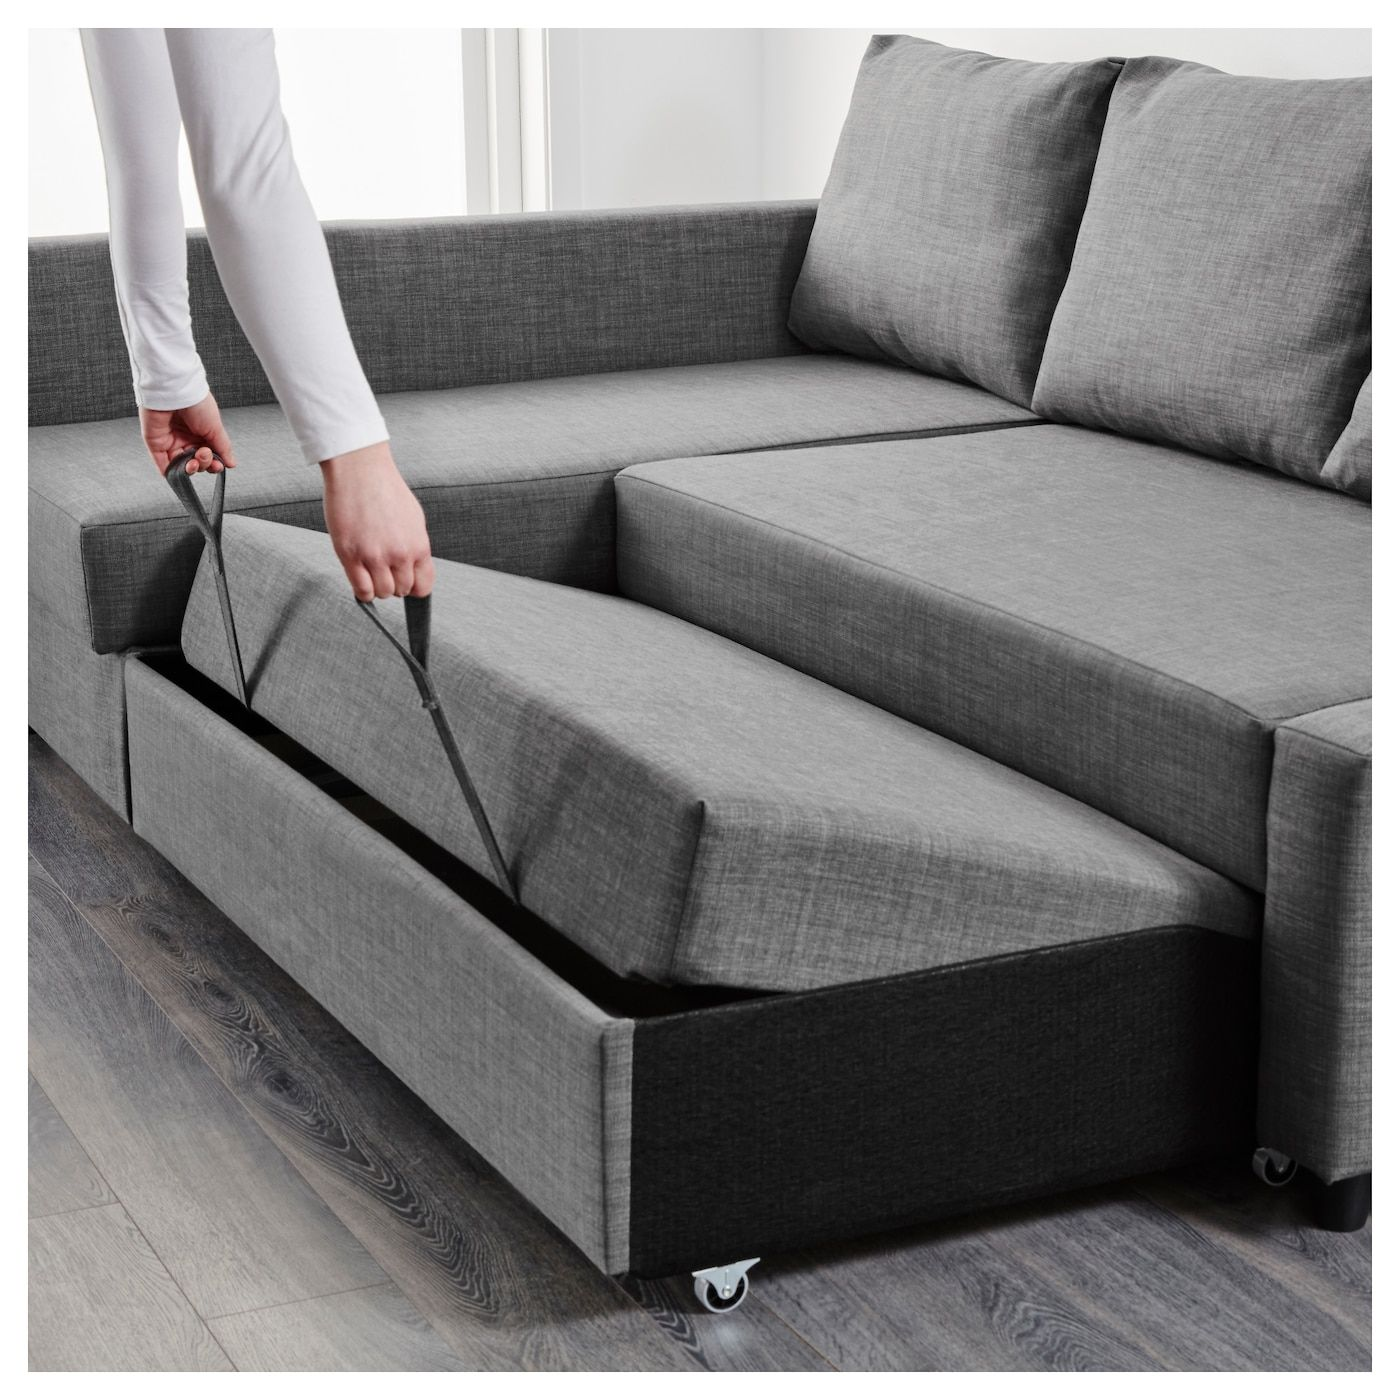 Friheten Eckbettsofa Mit Bettkasten Skiftebo Dunkelgrau Ikea Deutschland Corner Sofa Bed With Storage Sofa Bed With Chaise Corner Sofa With Storage